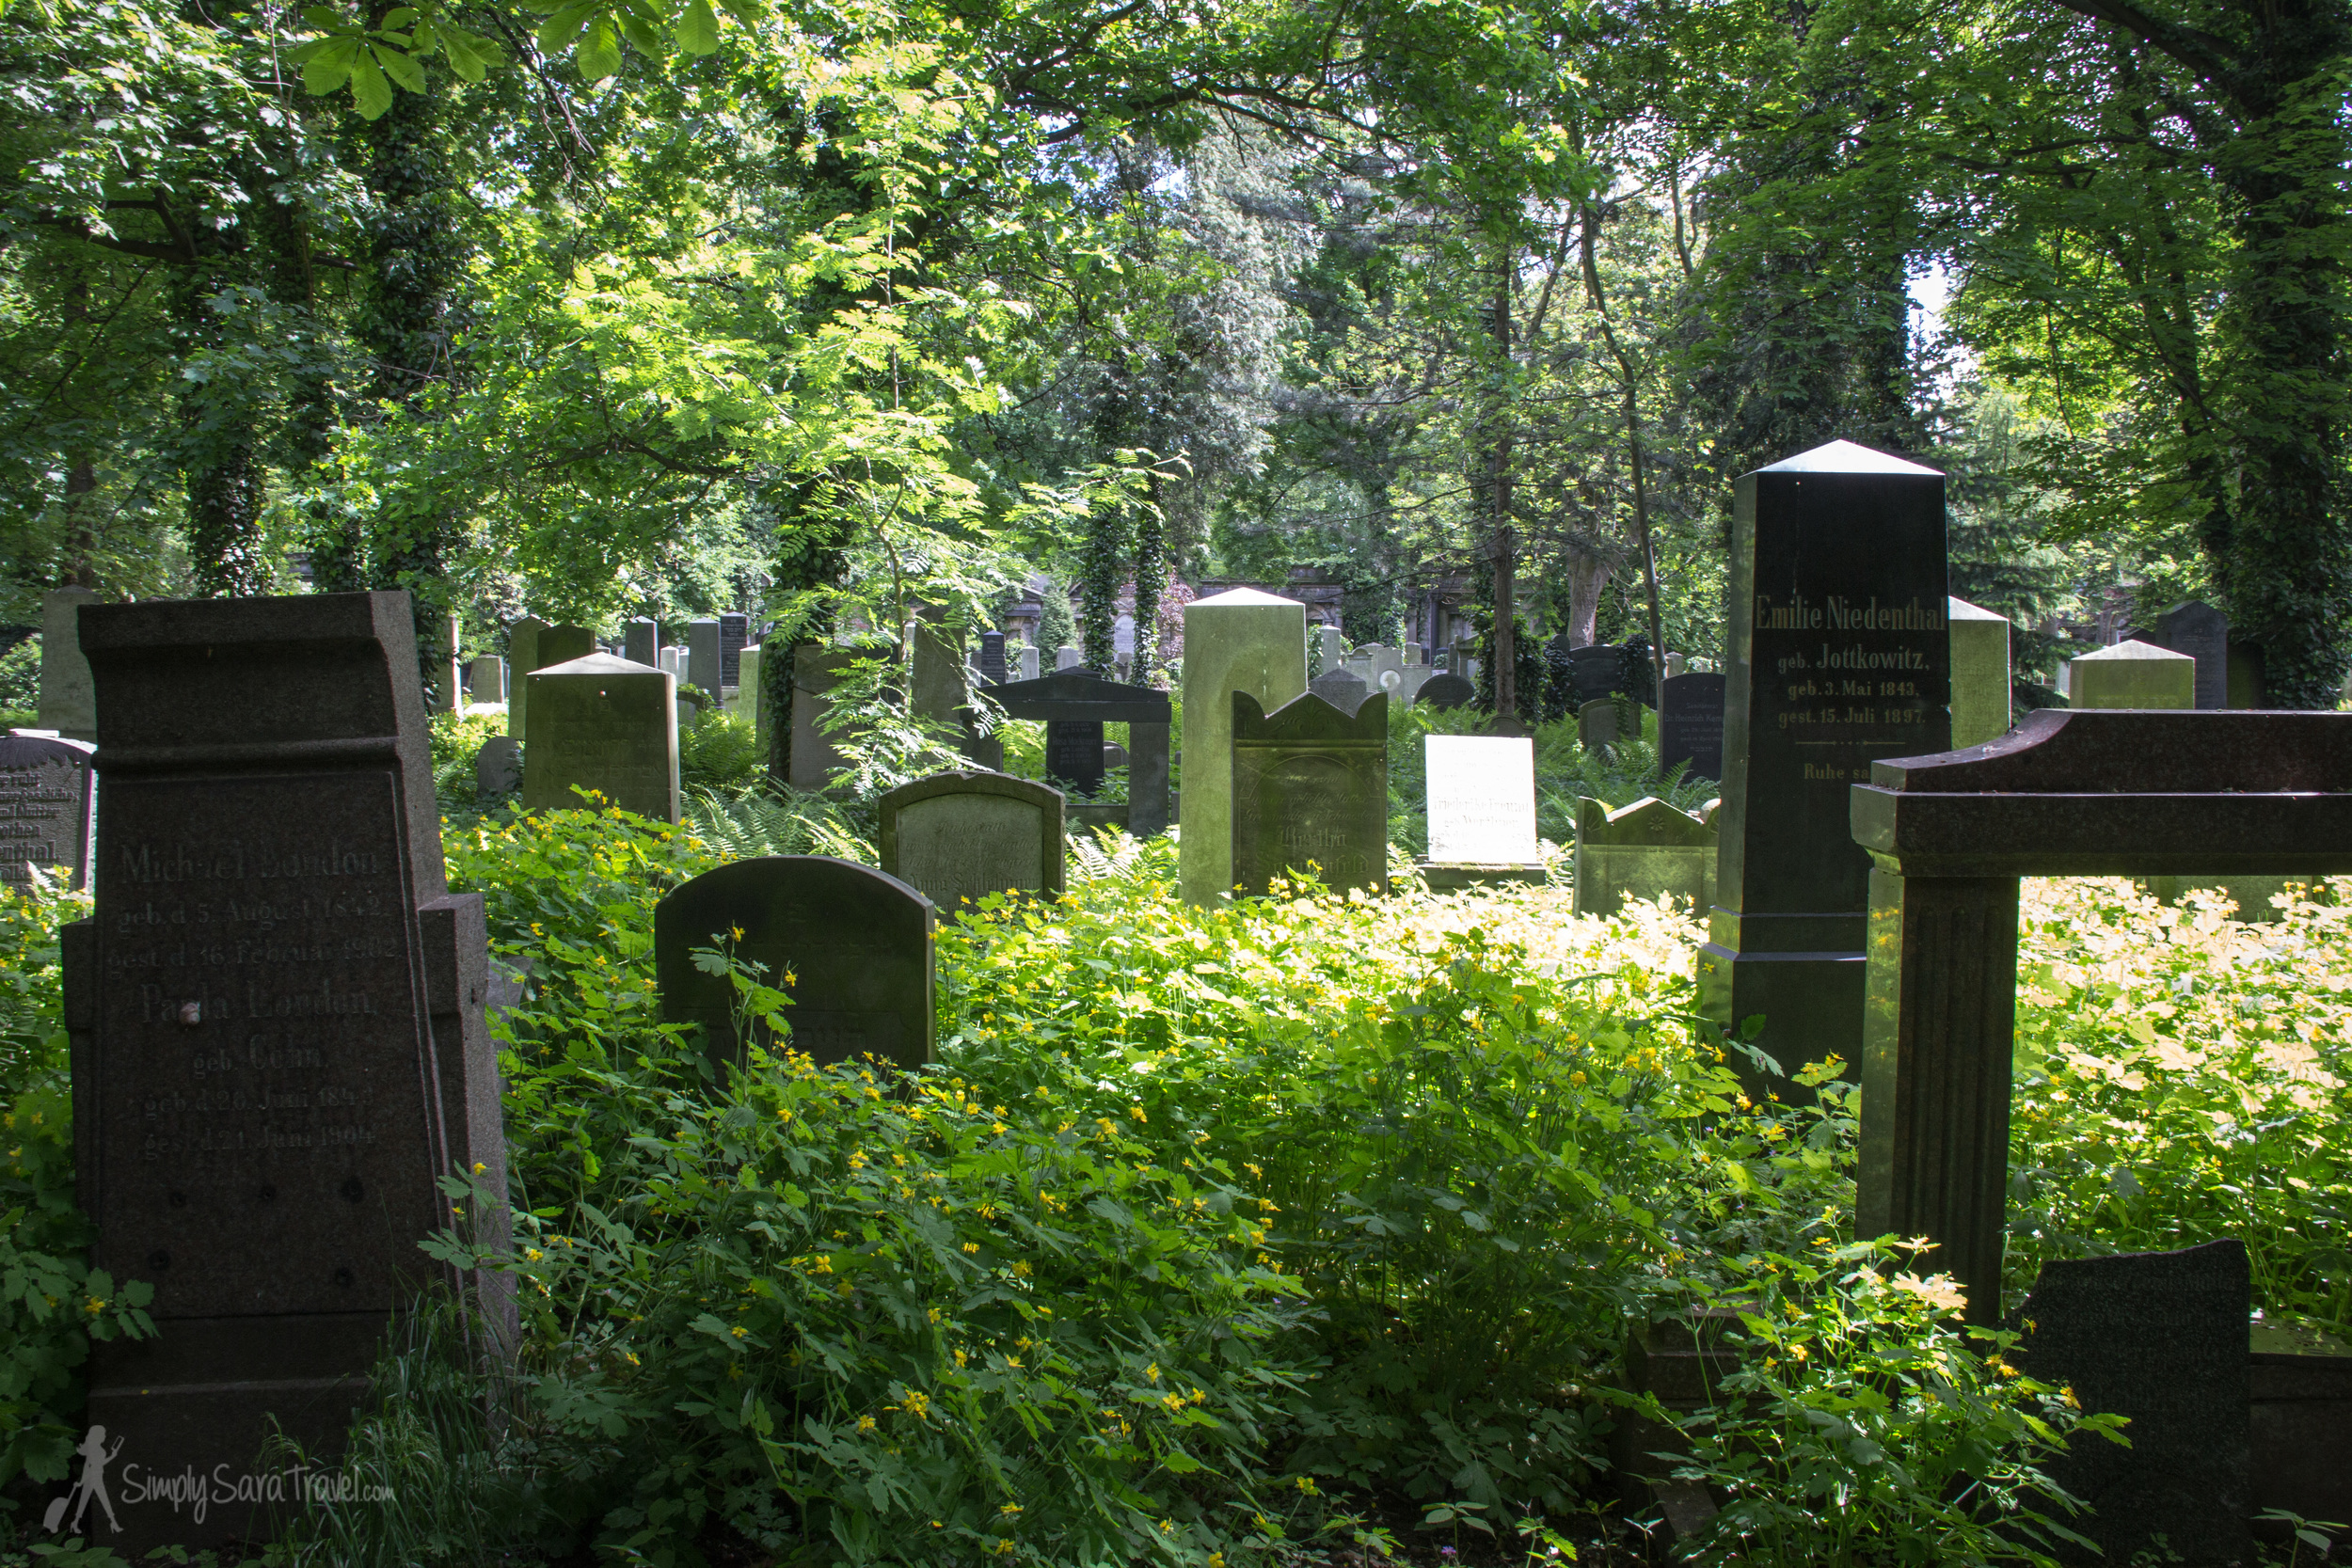 The overgrown Old Jewish Cemetery in Wroclaw, Poland with trees and tombstones